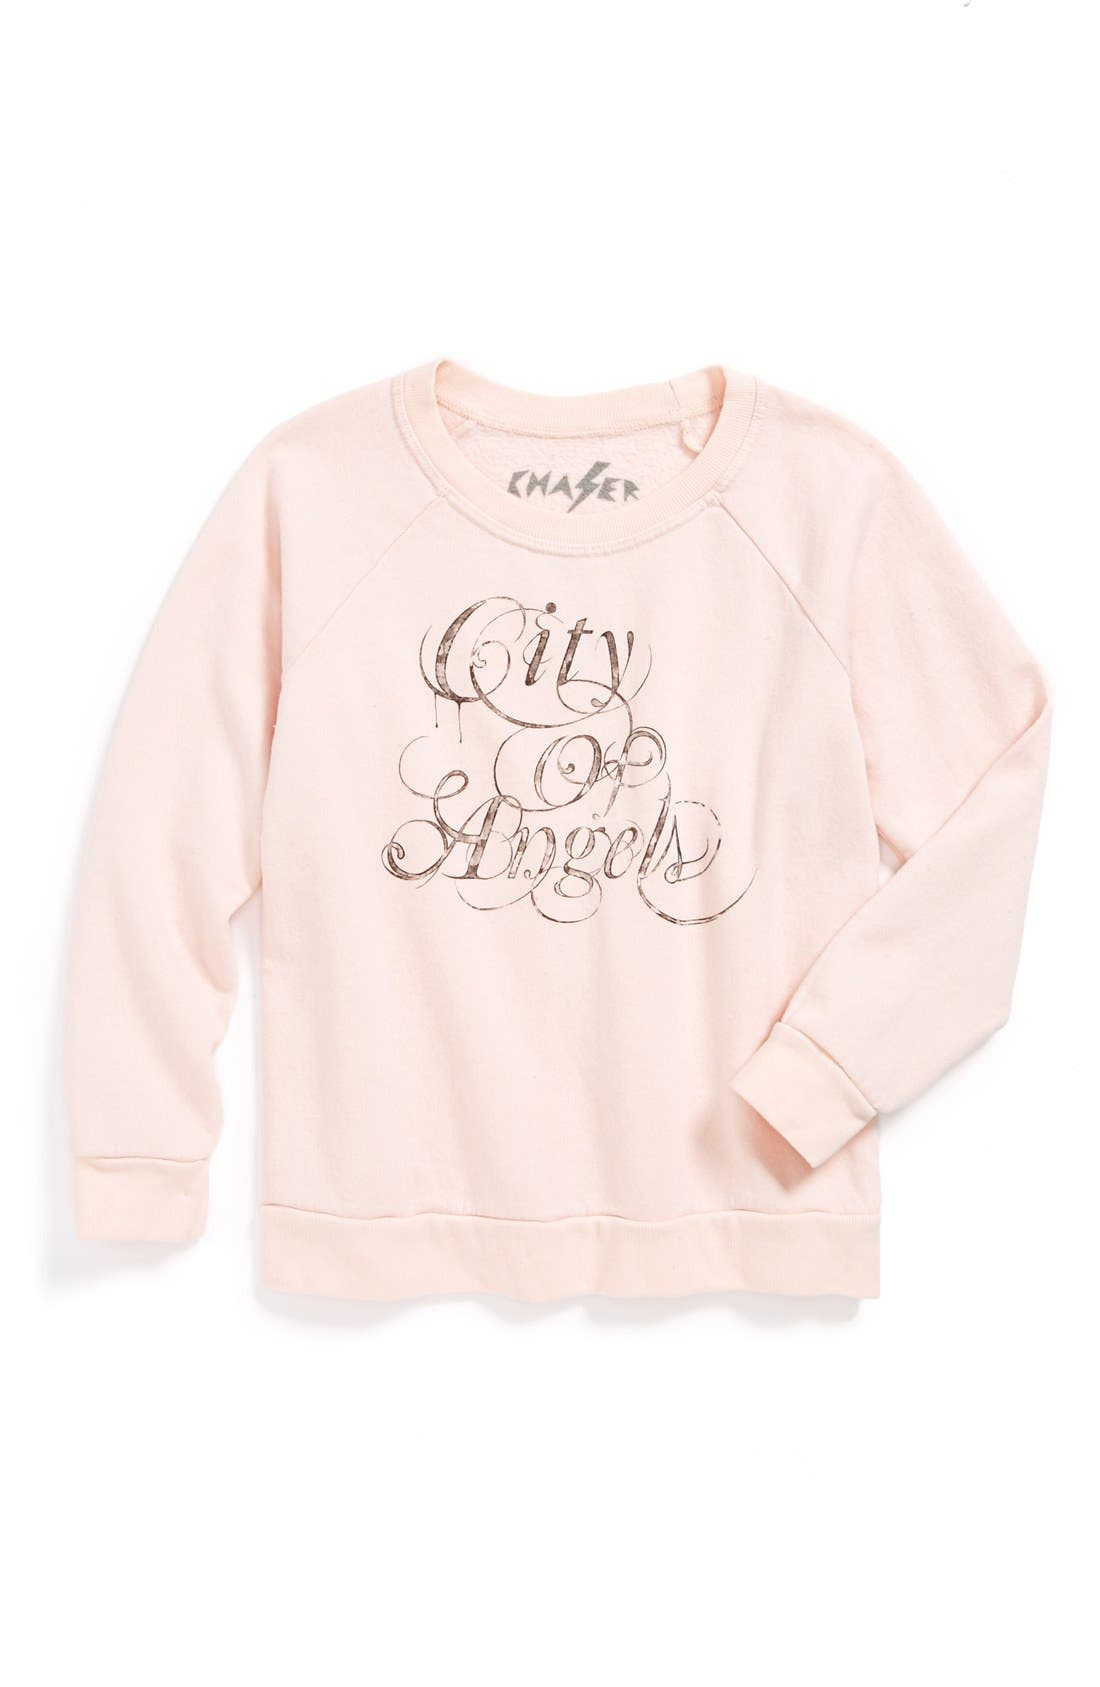 Alternate Image 1 Selected - Chaser 'City of Angels' Sweatshirt (Little Girls & Big Girls)